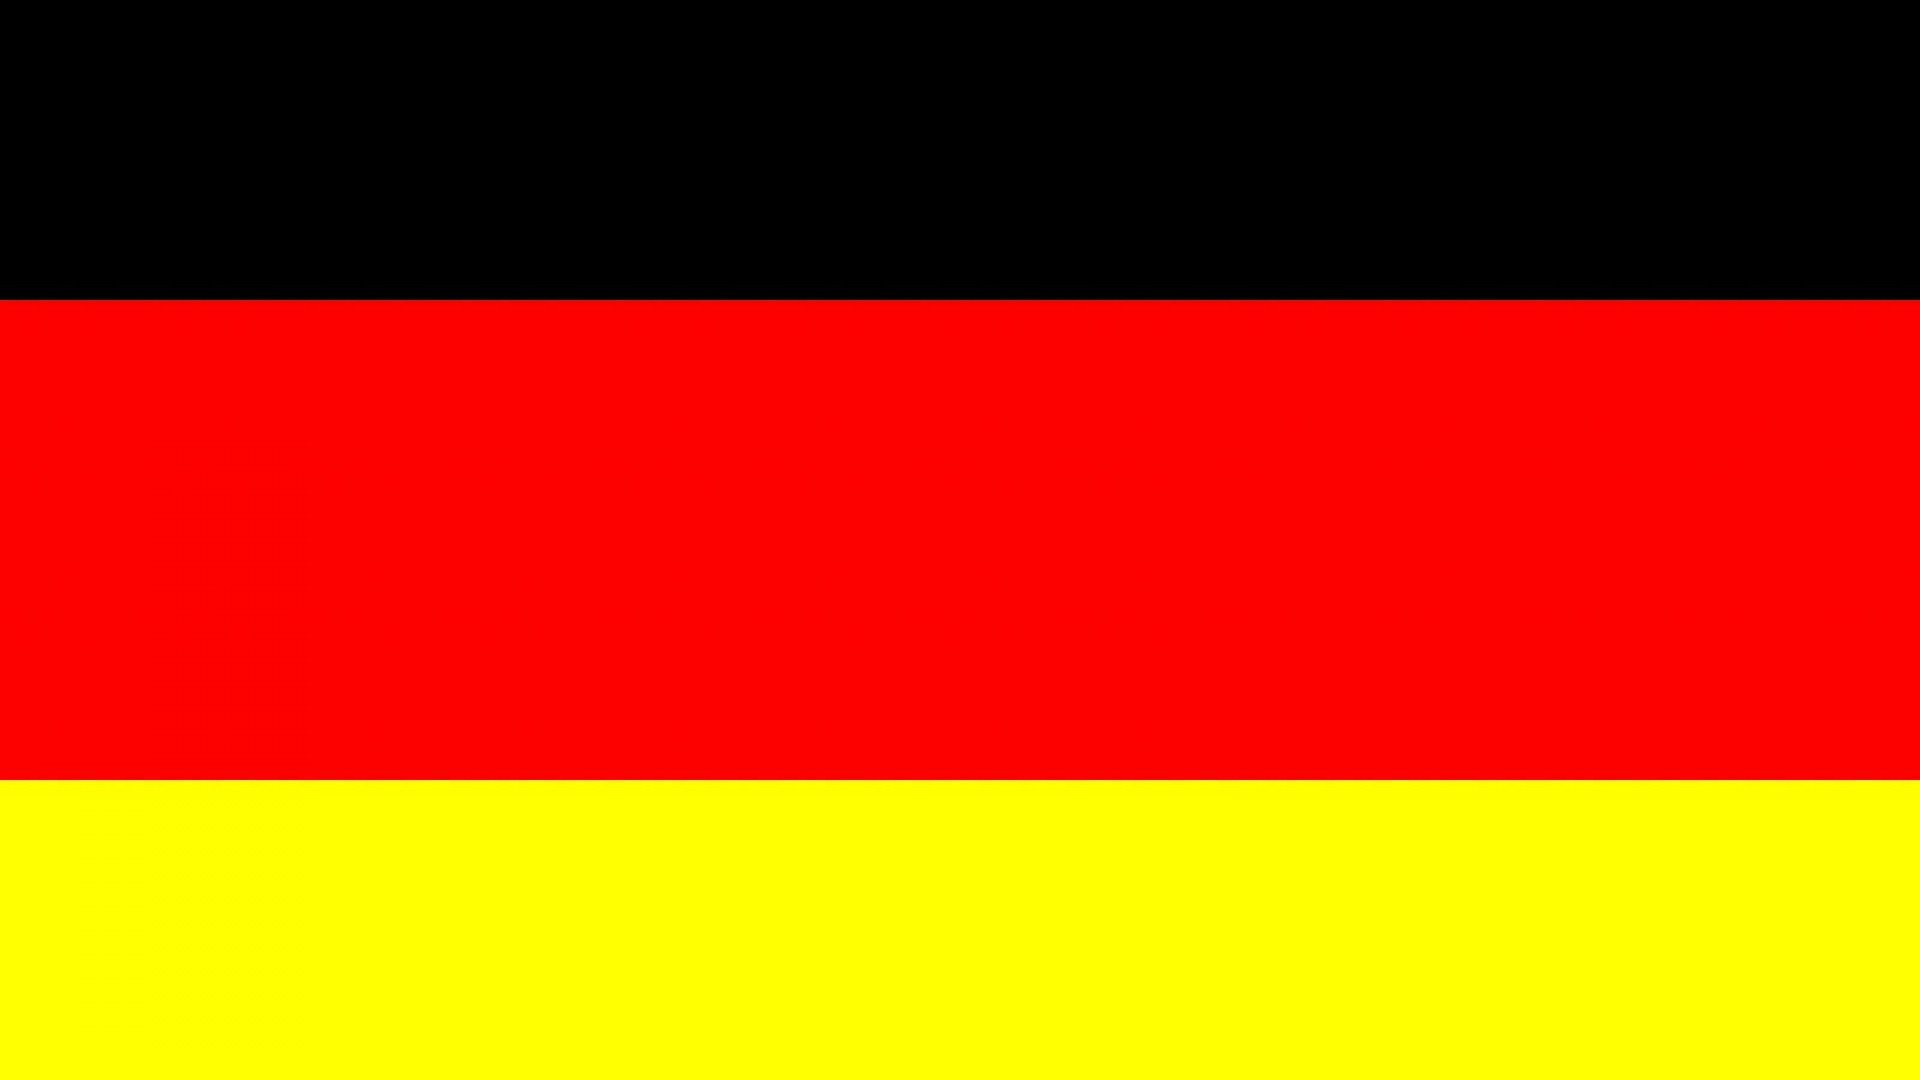 deutschland flag wallpaper - photo #32